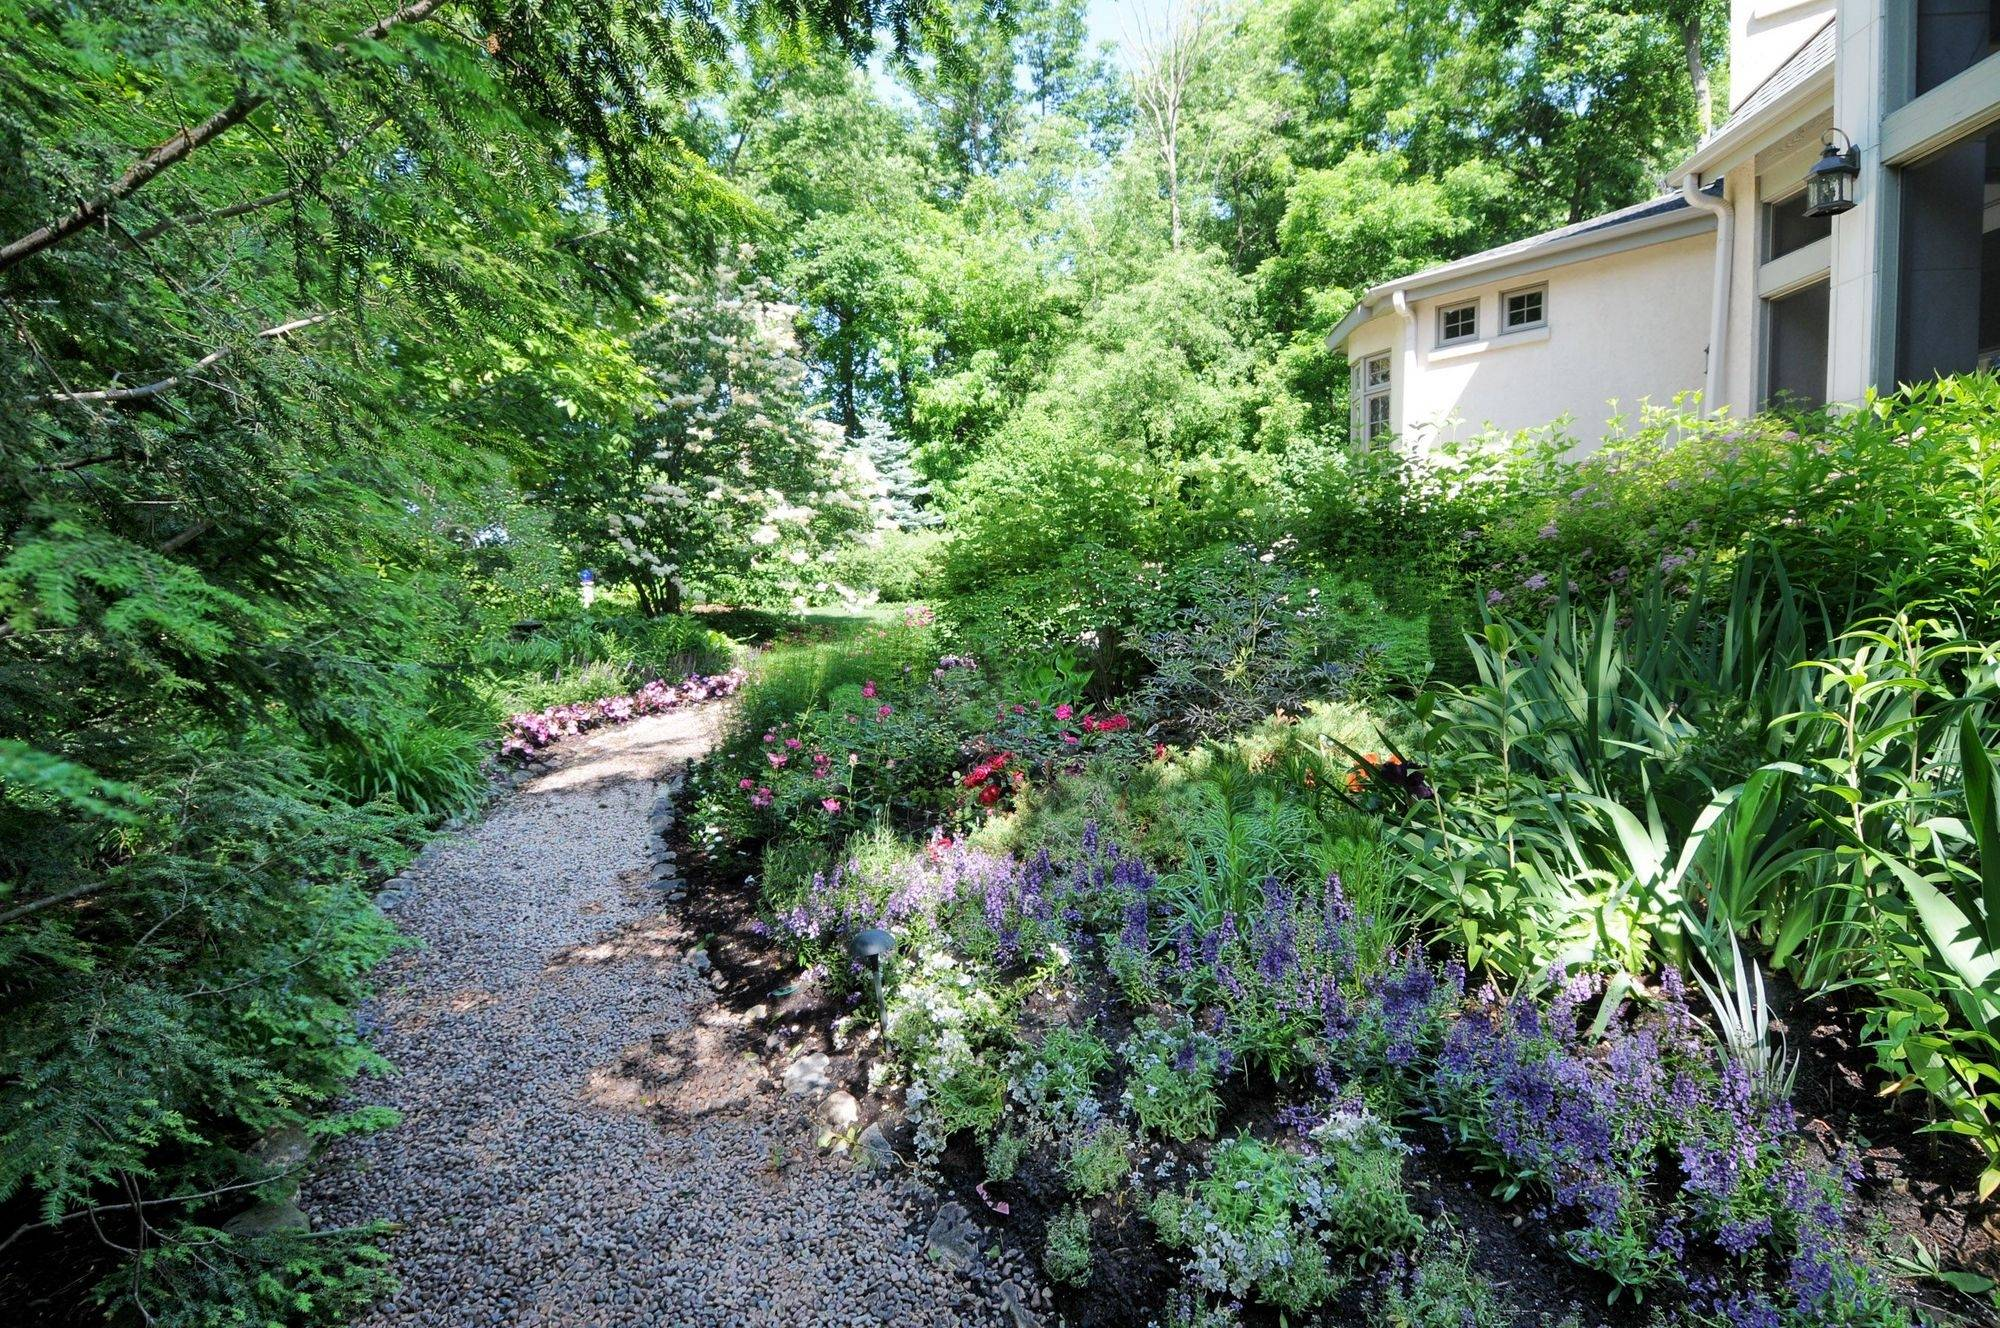 Sue and Dick Lamb's garden affords seclusion and surprises. The yard is part of the Lisle Woman's Club's Garden Gait walk.